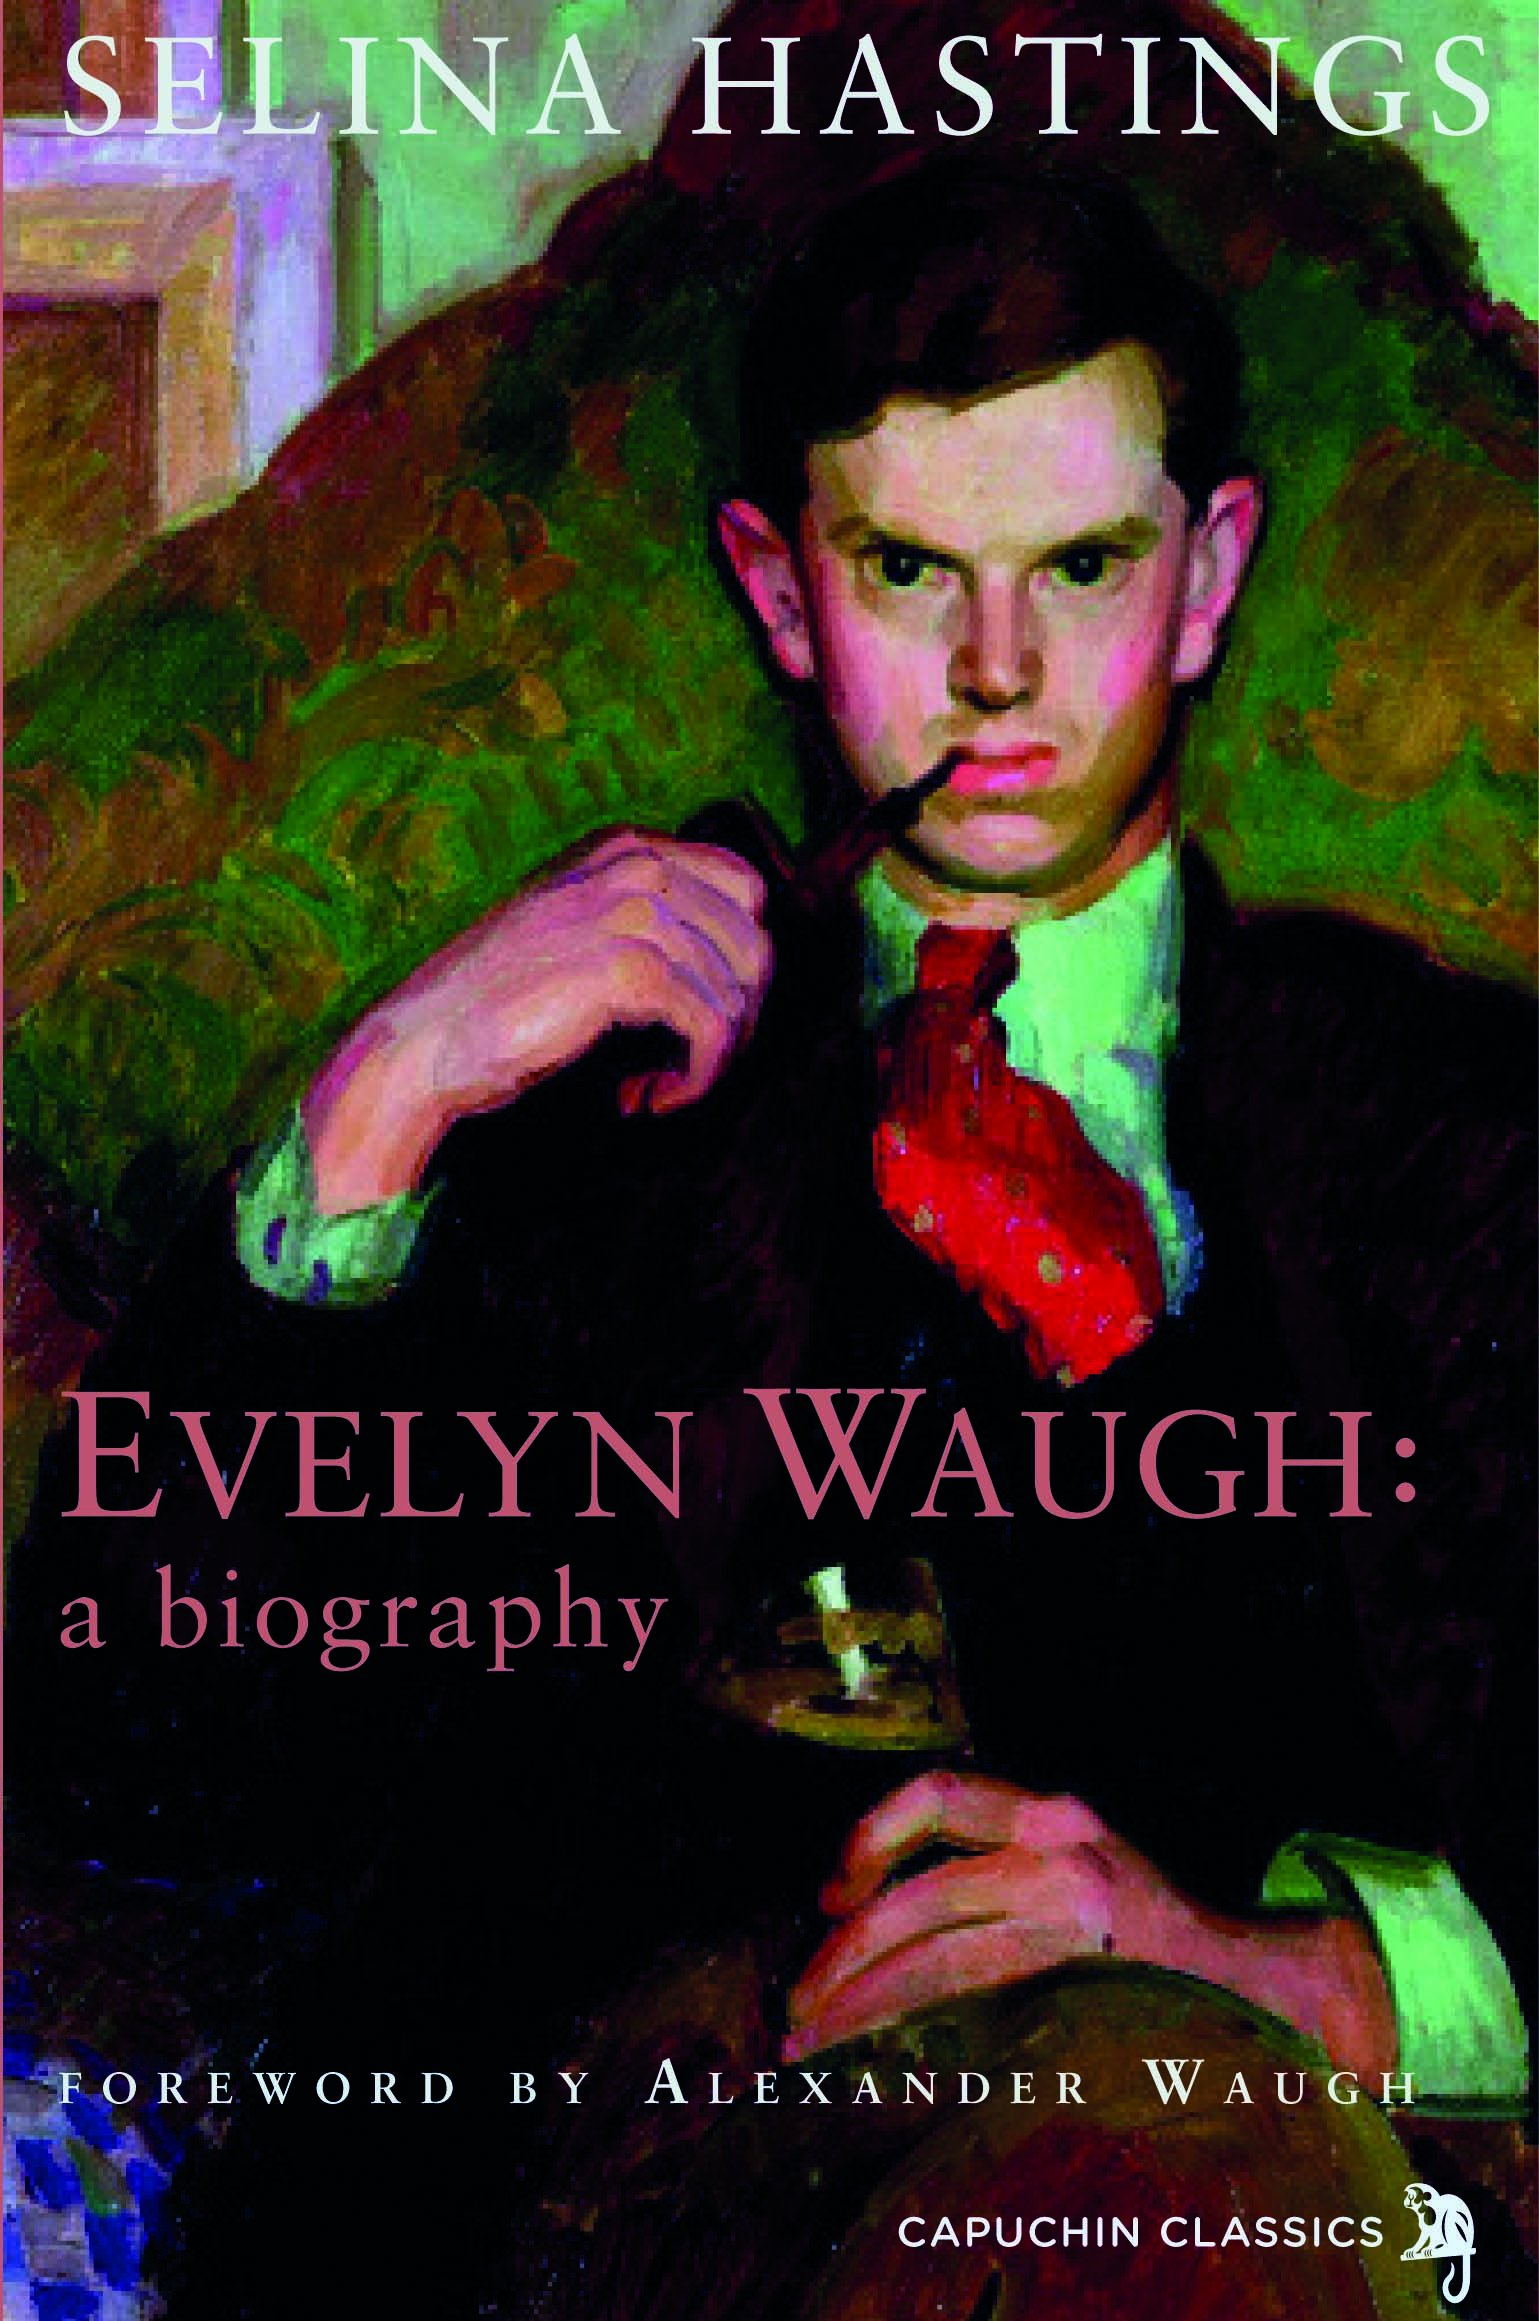 Evelyn Waugh: a Biography: Amazon.co.uk: Selina Hastings: 9781907429804: Books